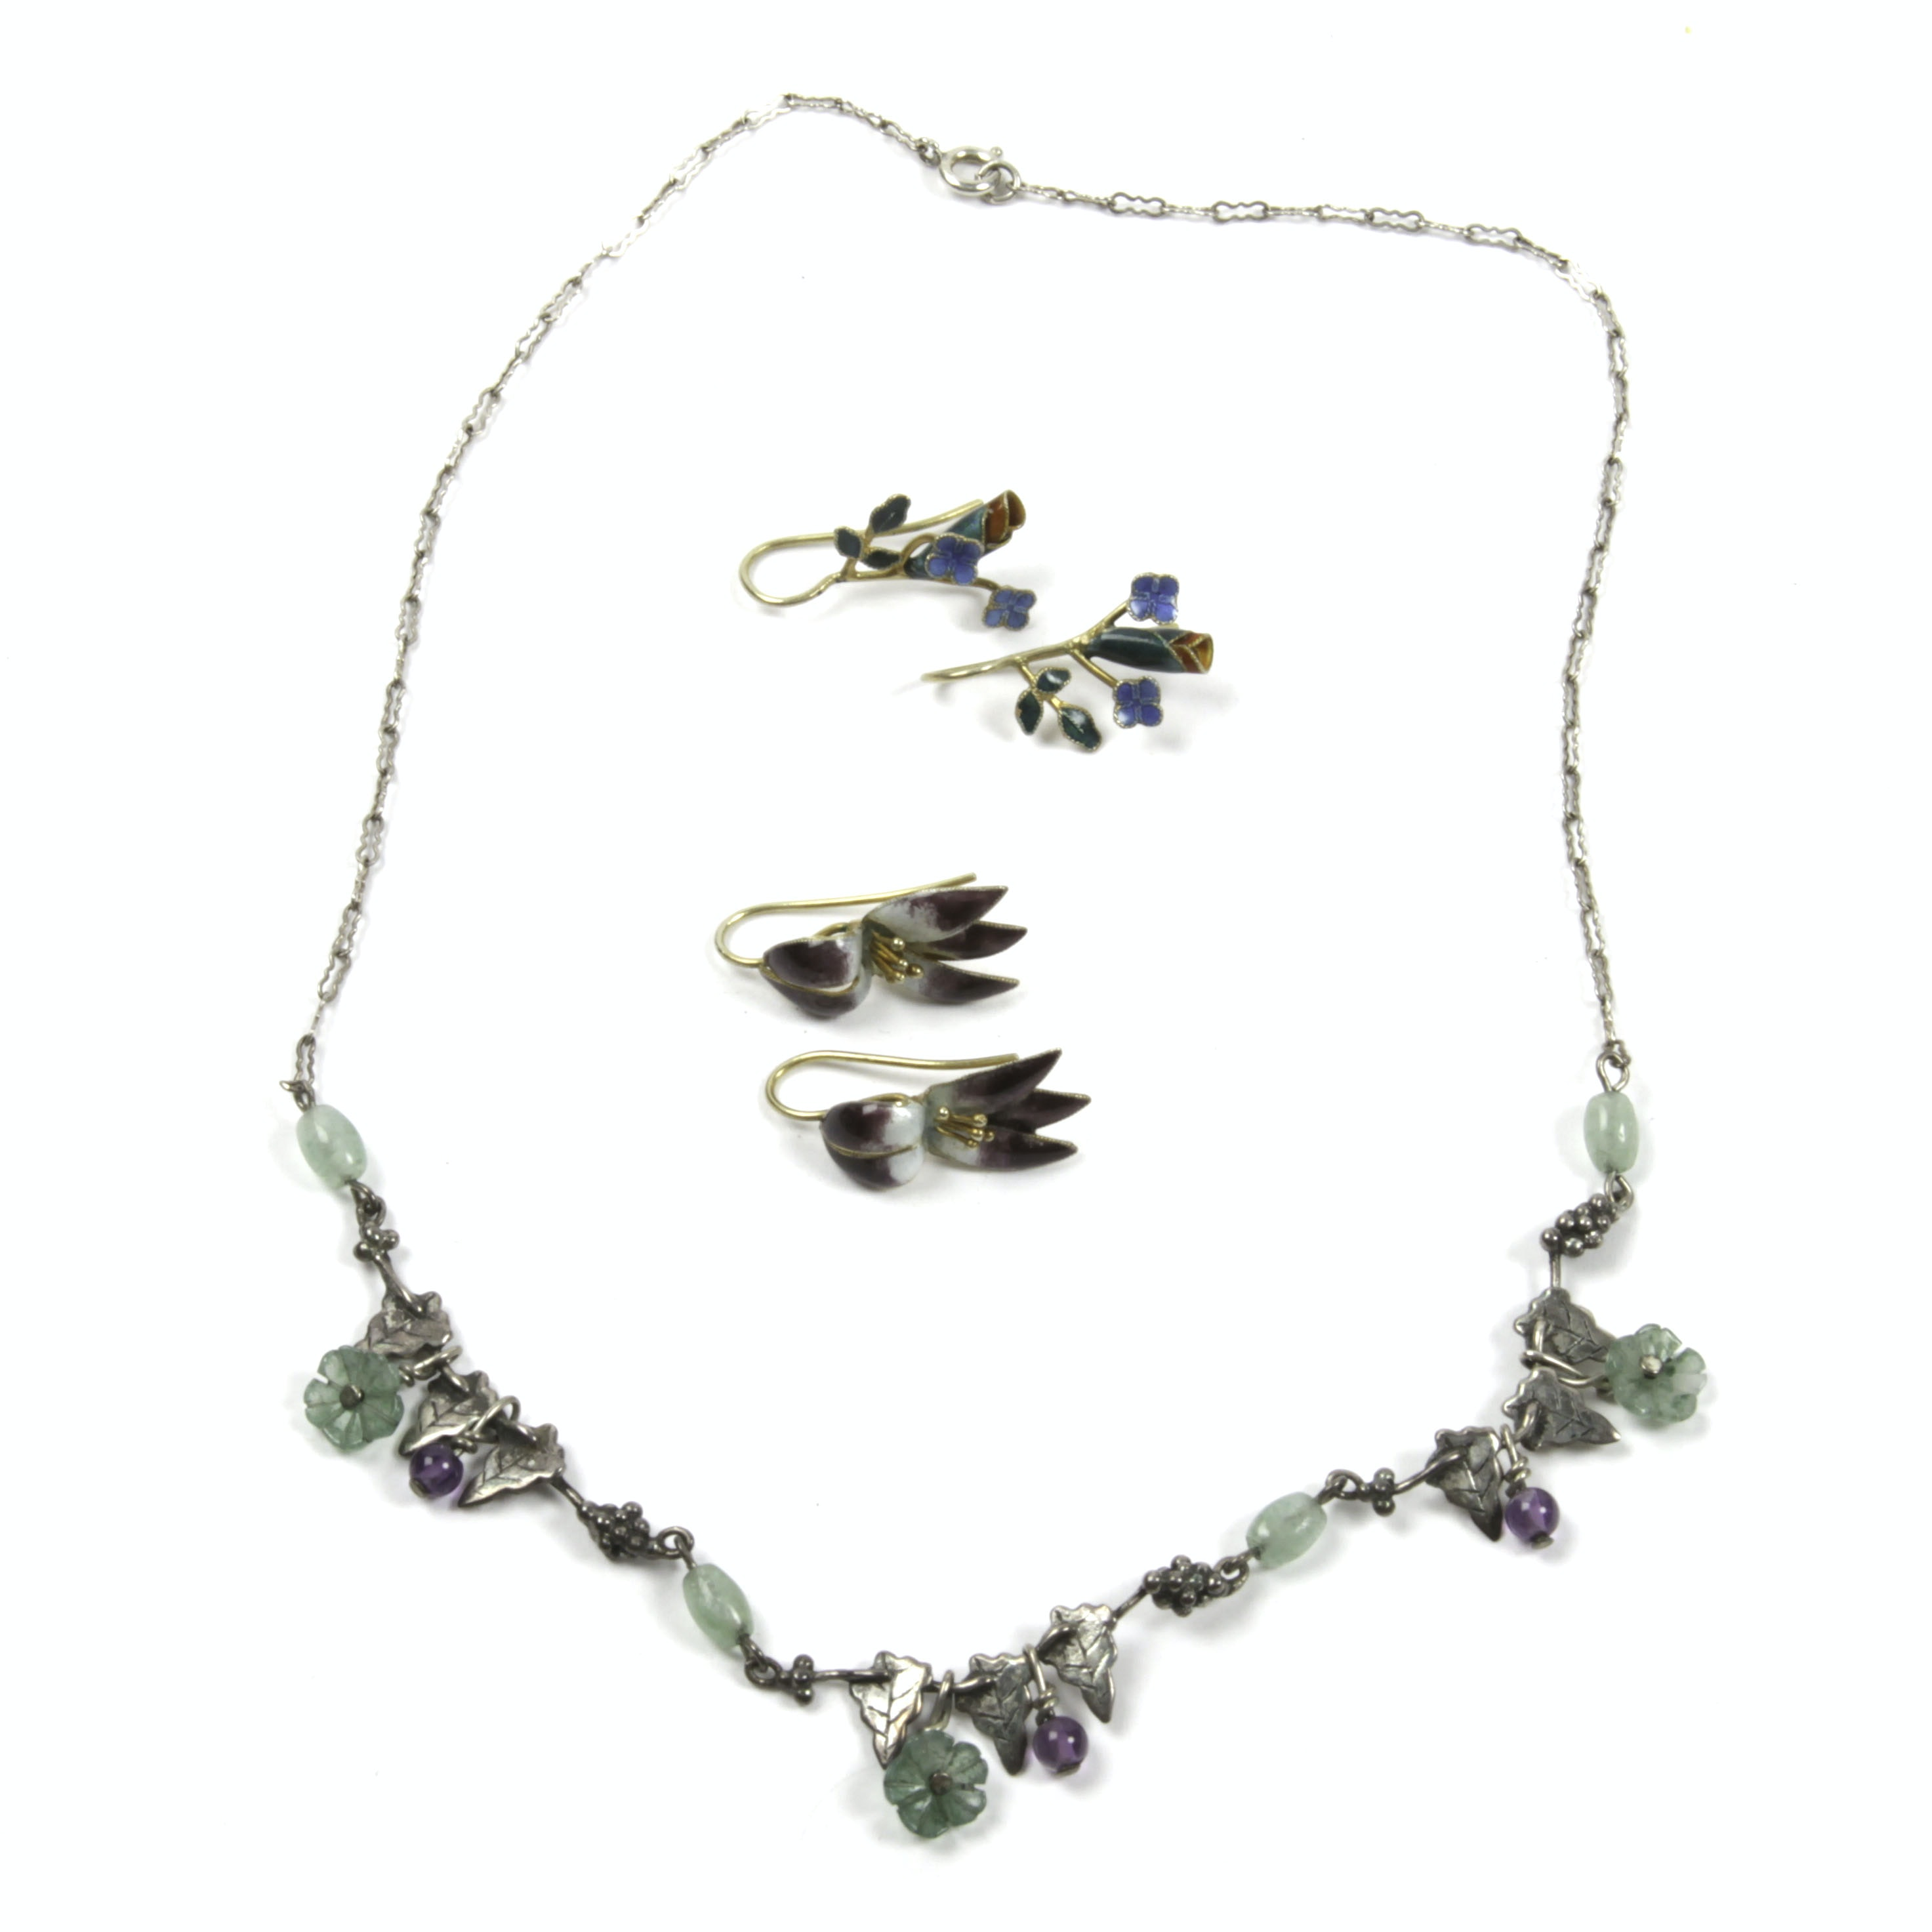 Sterling Silver and Enameled Floral and Bead Jewelry